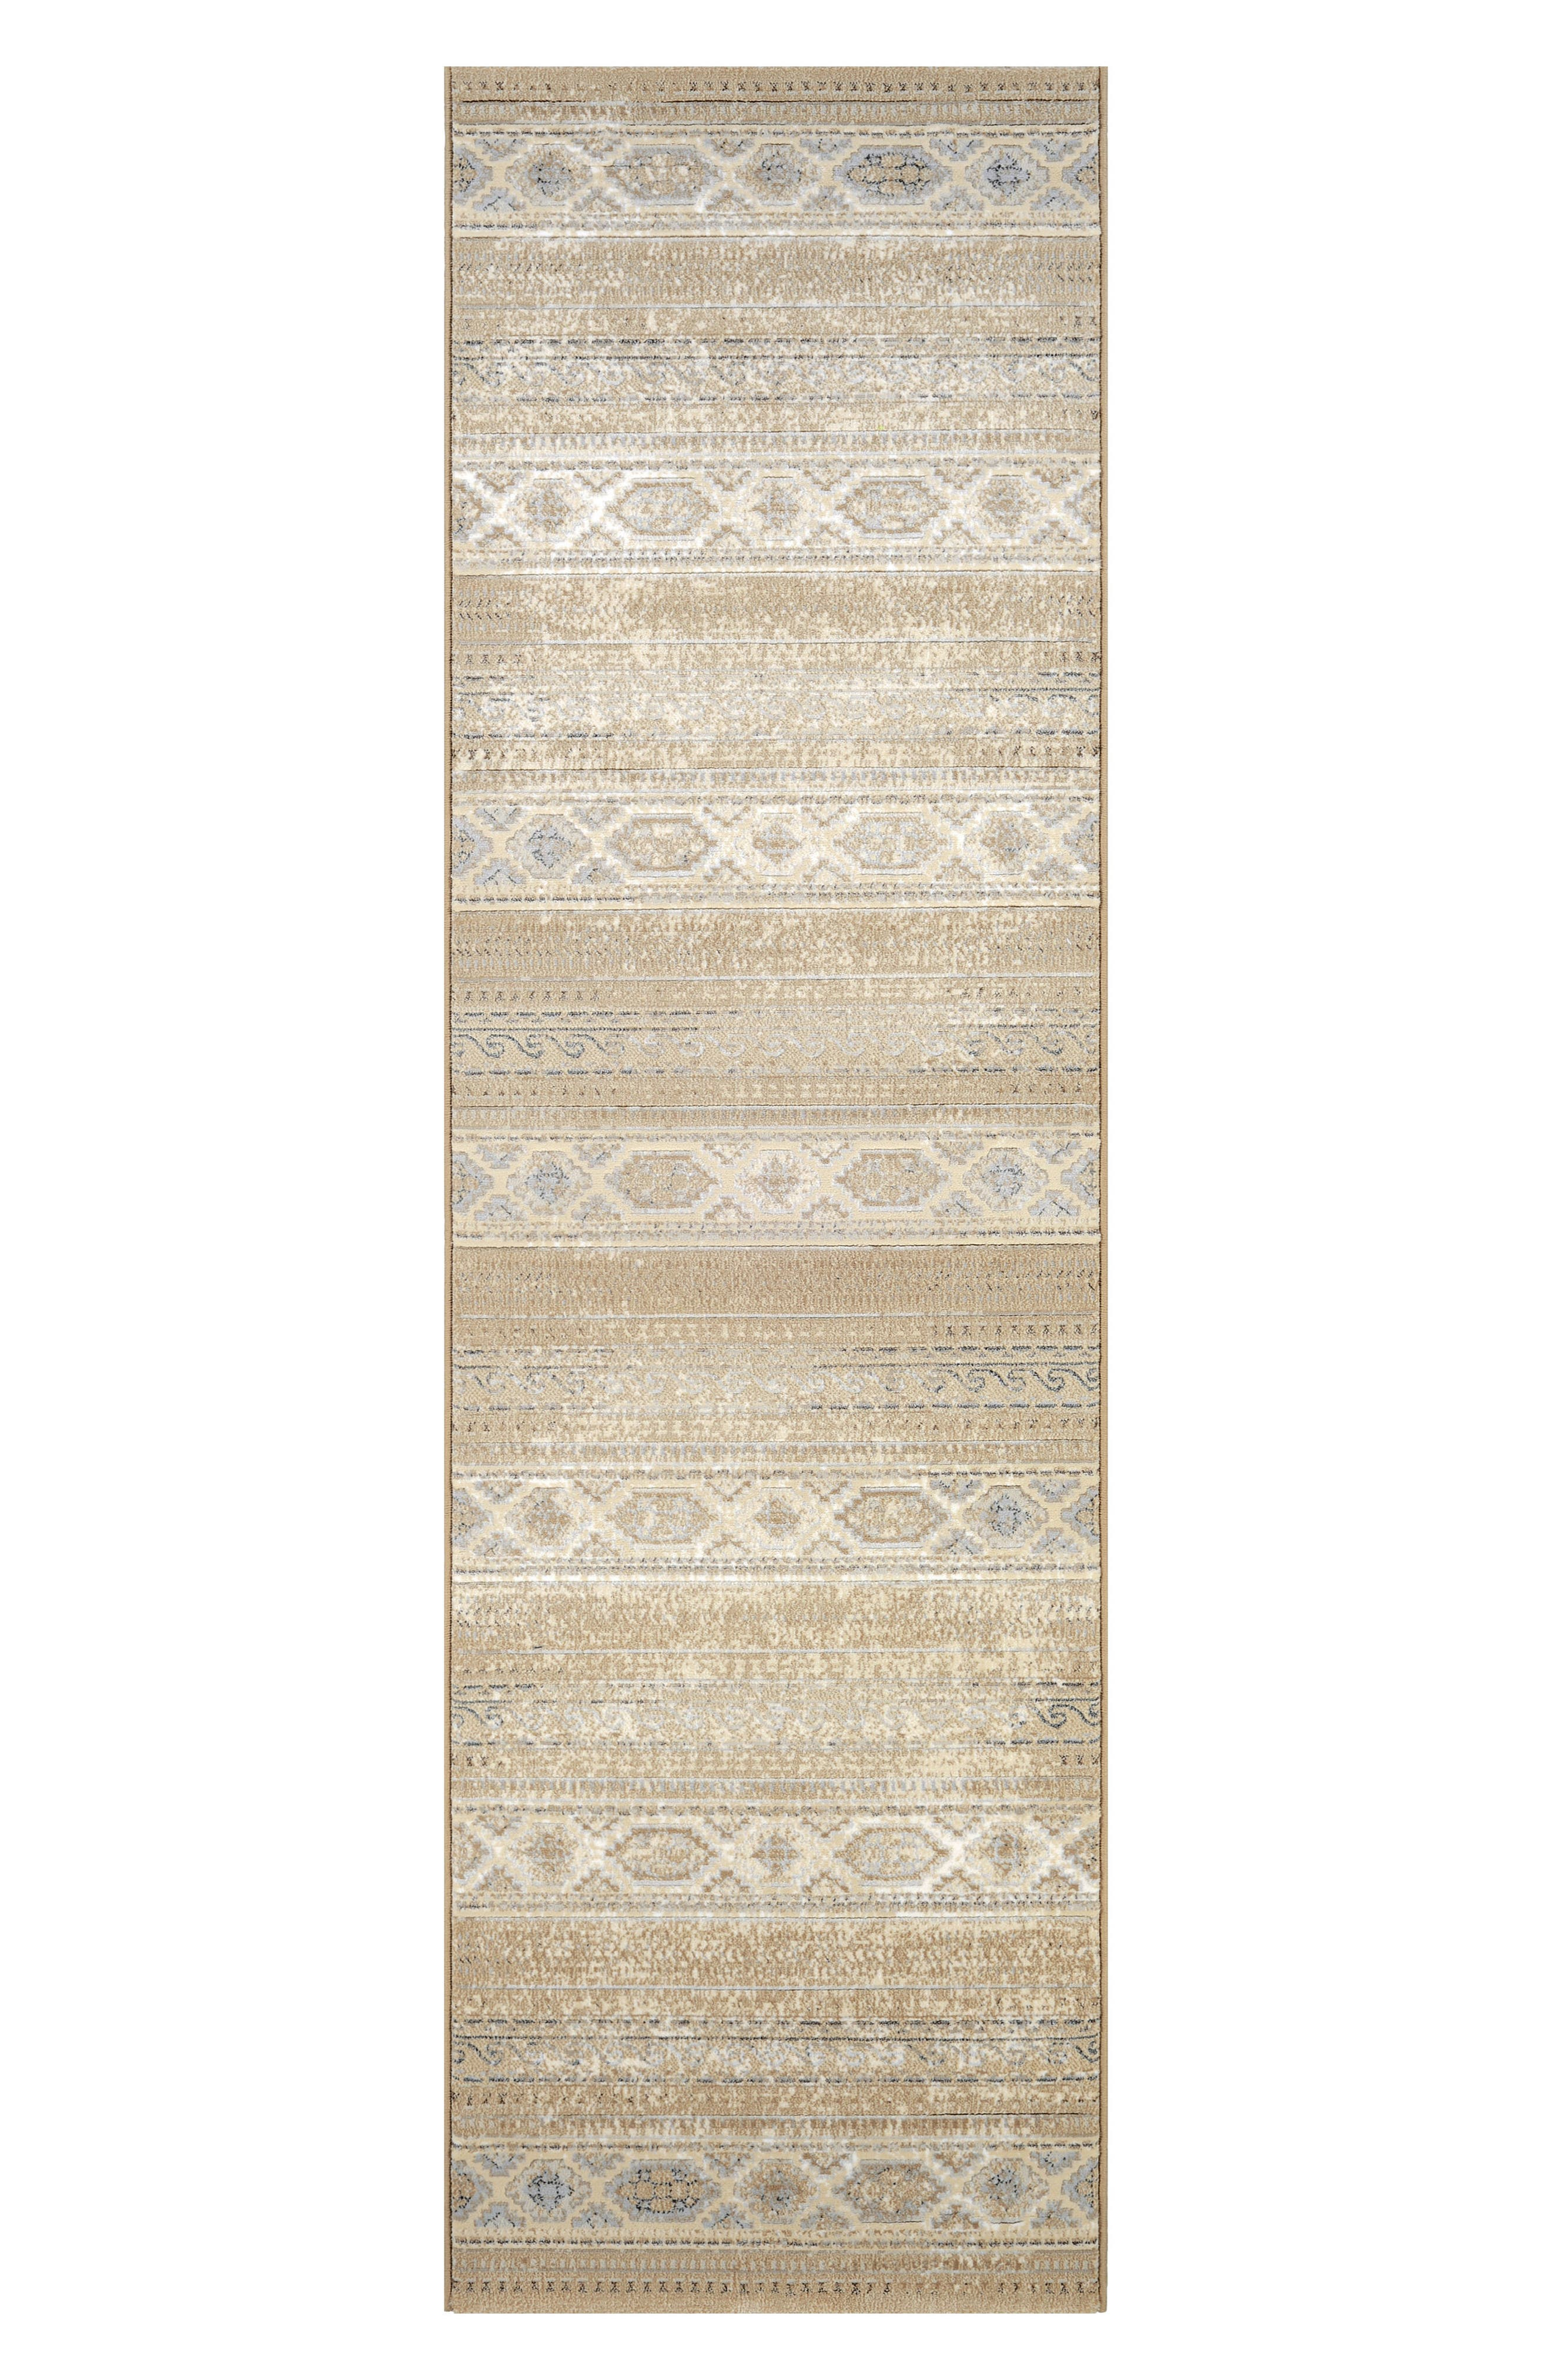 Malta Indoor/Outdoor Rug,                             Alternate thumbnail 2, color,                             CHAMPAGNE